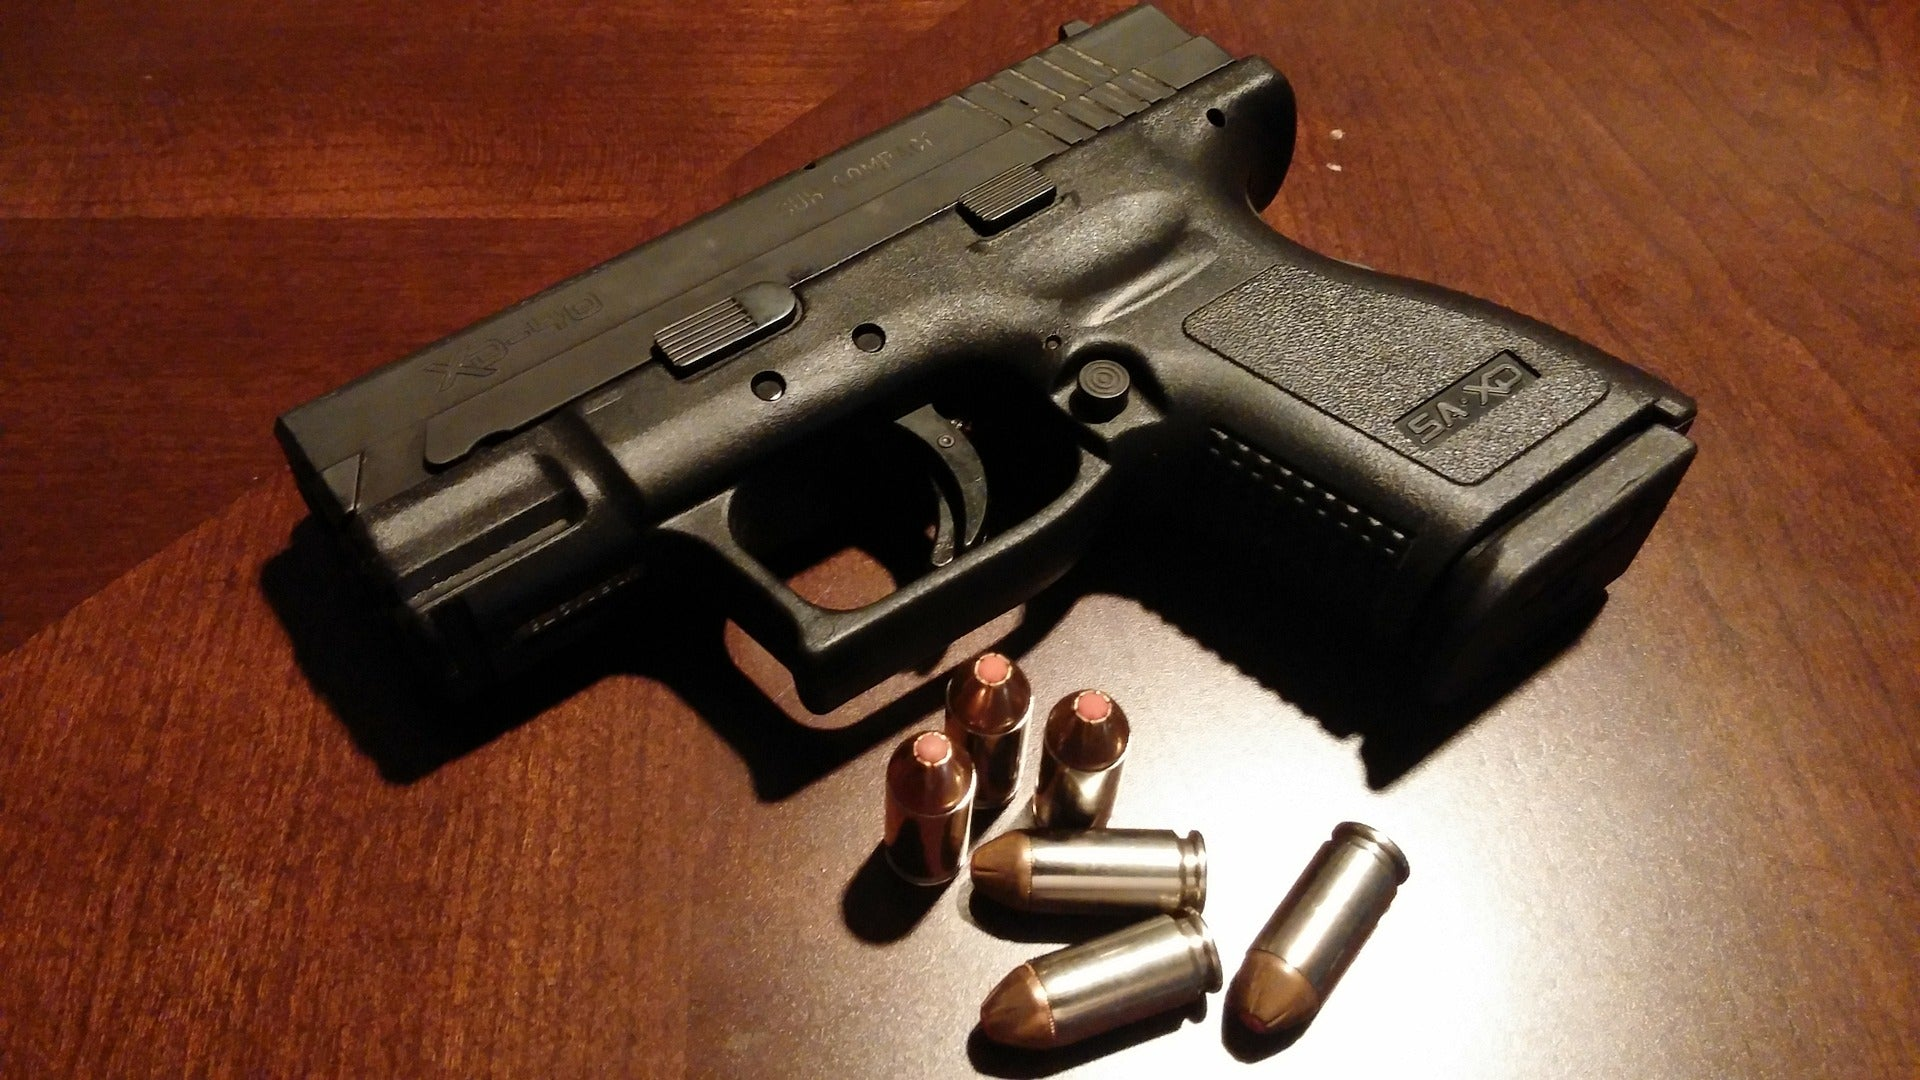 Handgun Safes: Designed To Prevent Gun Accidents in Your Home